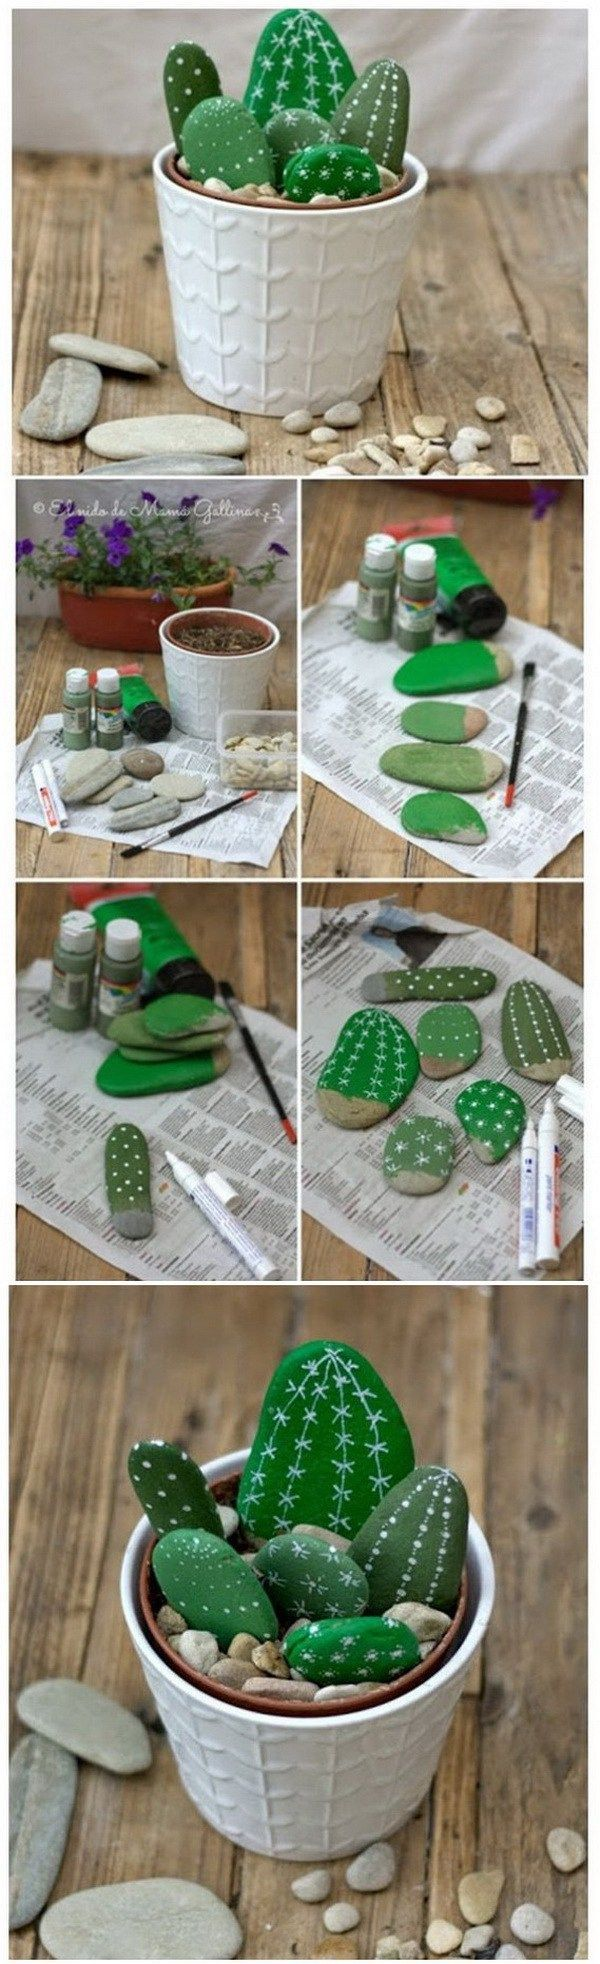 Painted Cactus Rocks. Rock painting has become very popular these days. Pick up rocks and paint them in the pattern of cactus, arrange them together with some natural rocks as you like in a flower pot for a stunning homemade centerpiece!